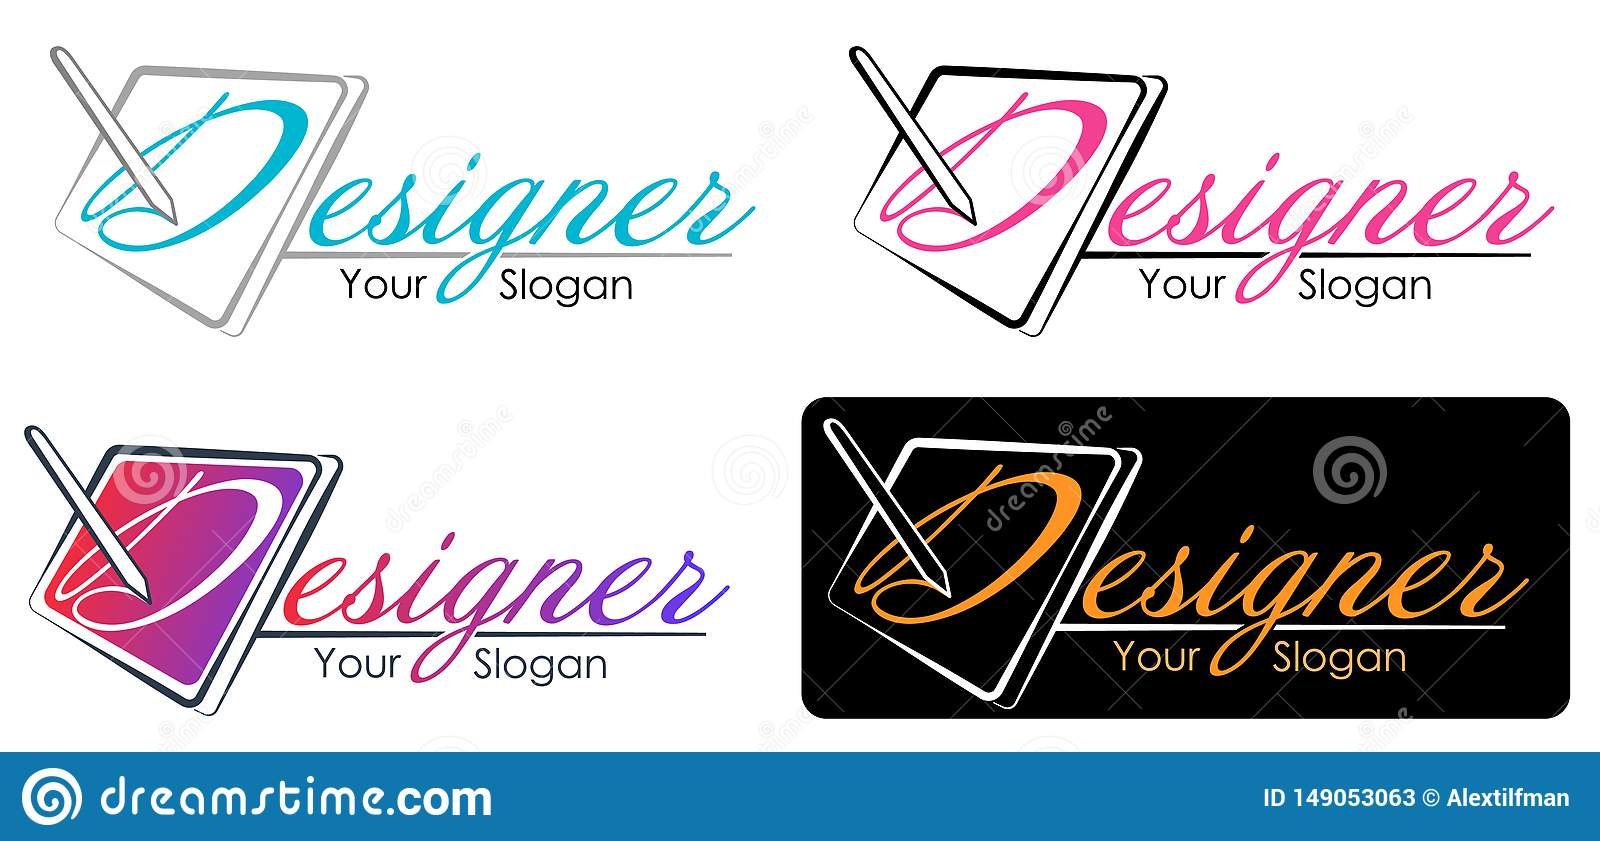 Vector Modern Design Style Logo Template For Graphic Designer Or